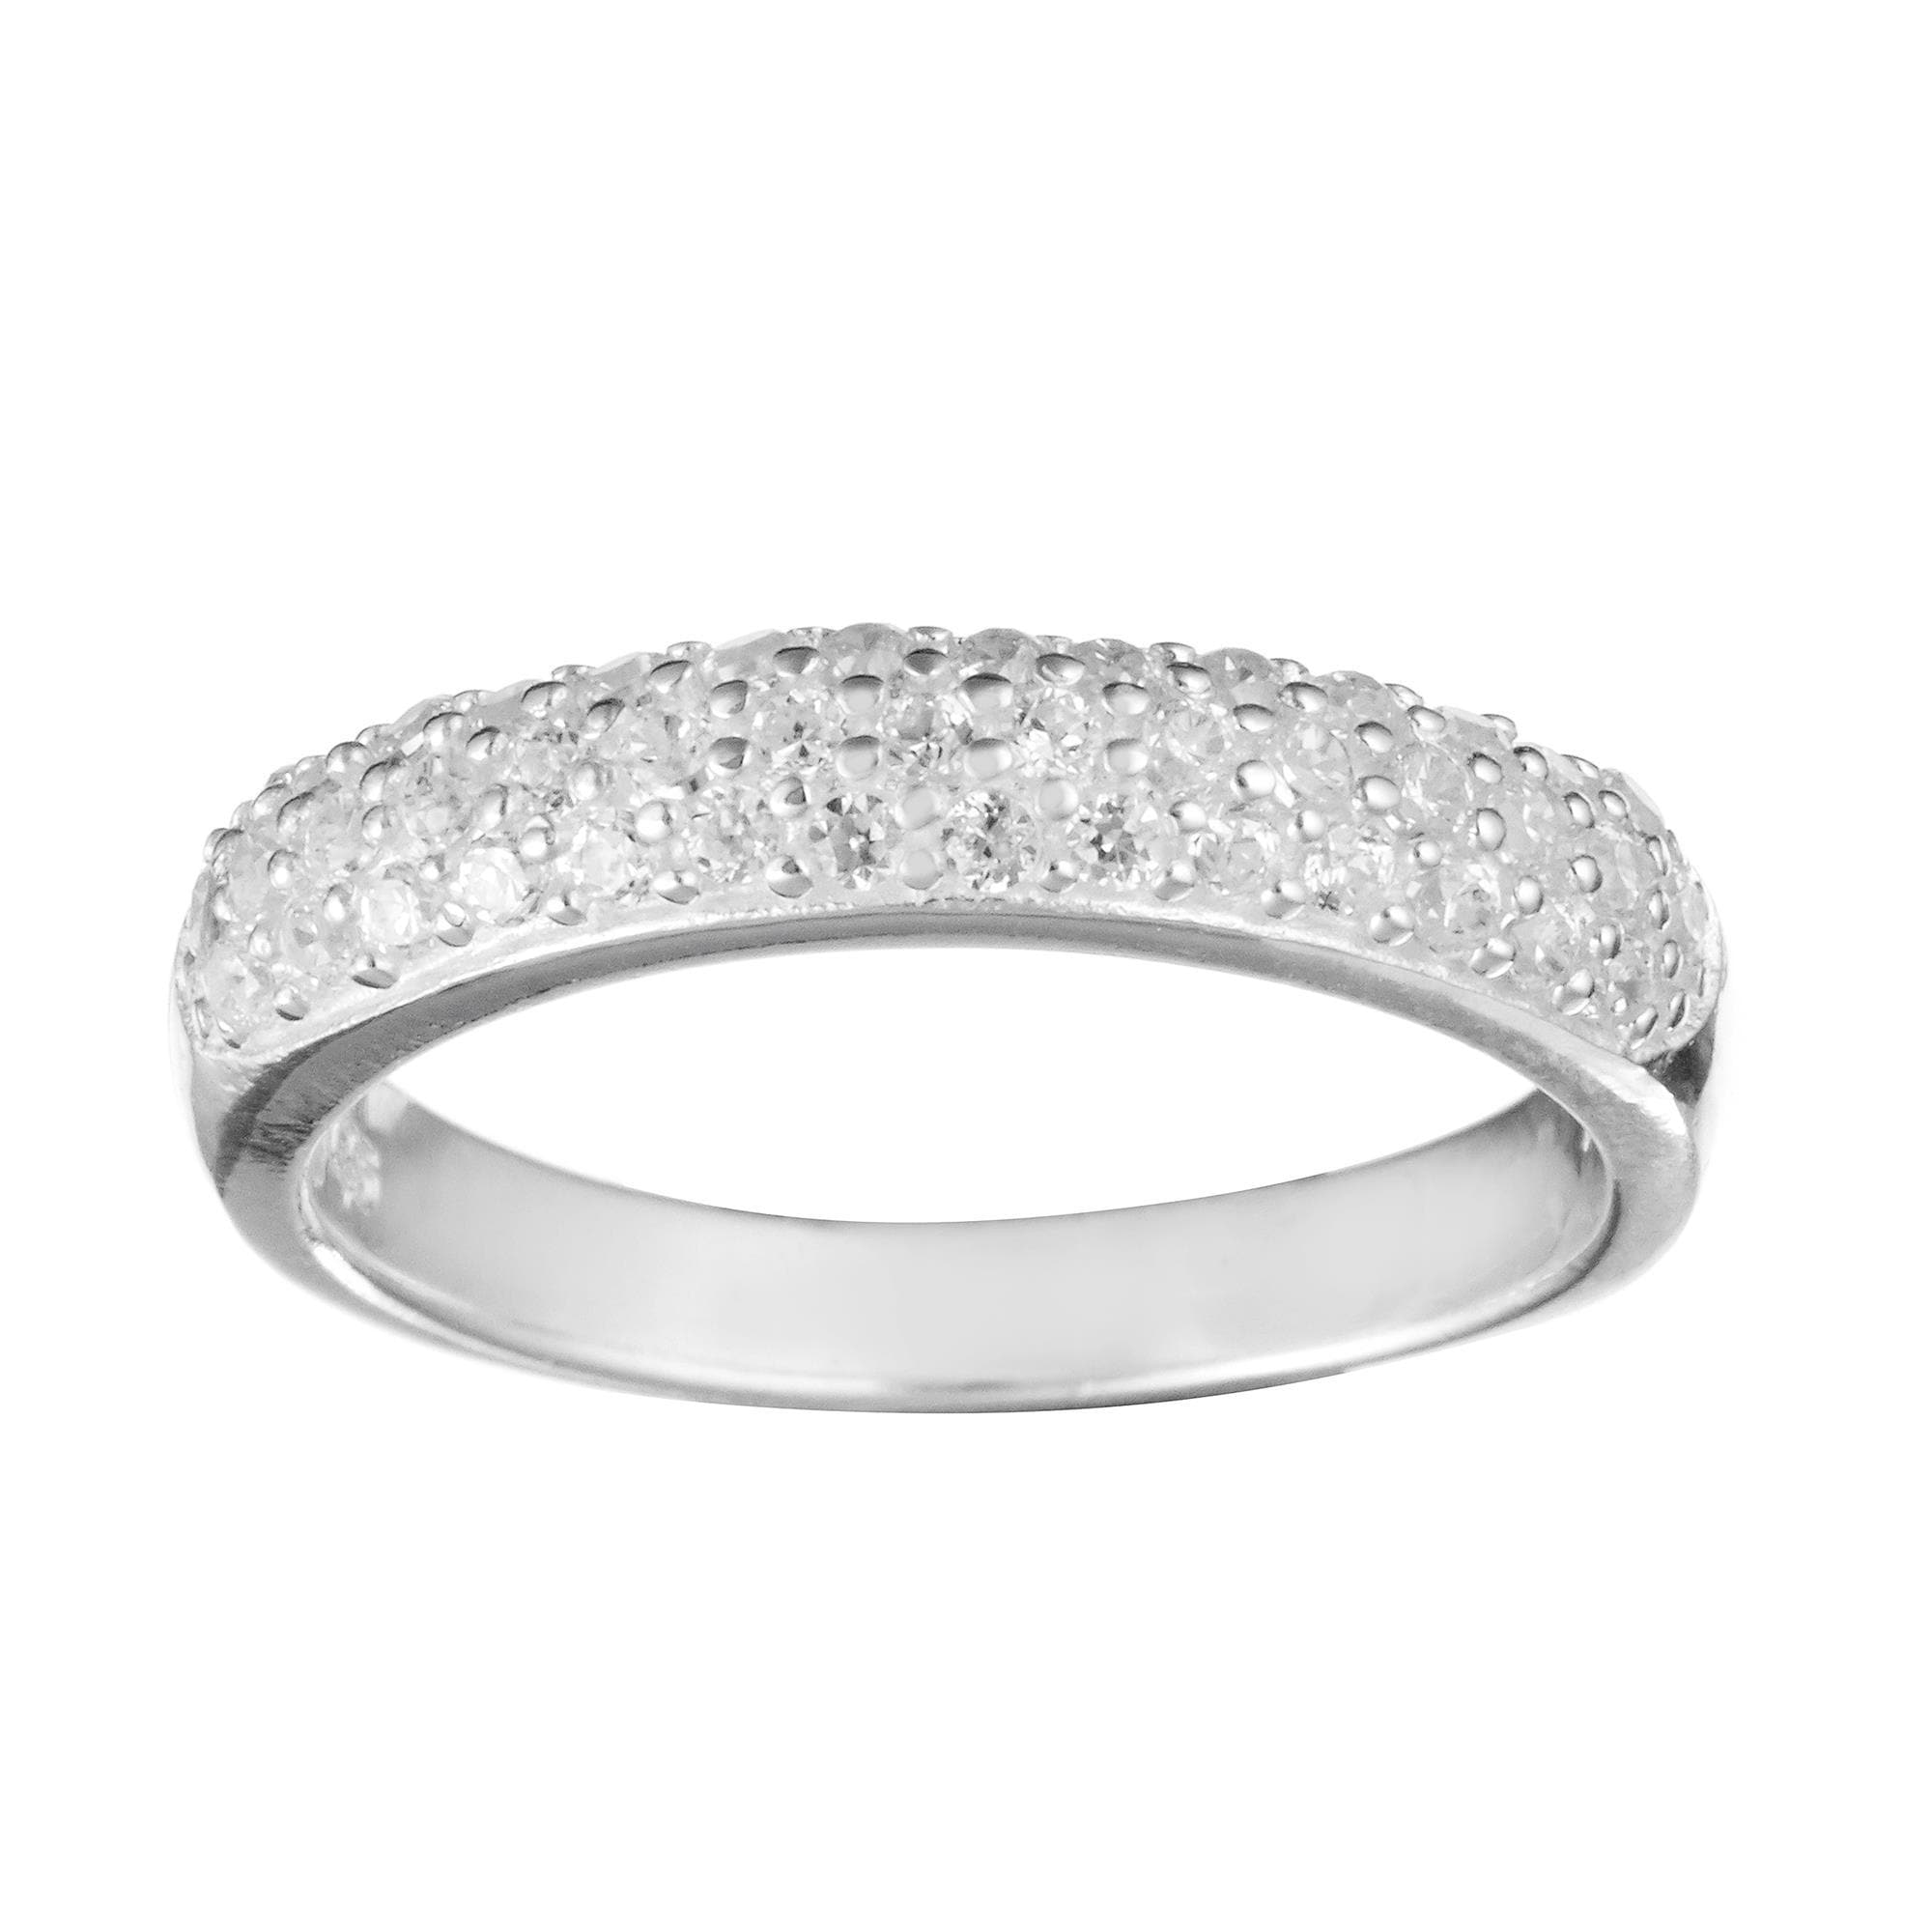 eternity products bands cz wide s women silver ring womens sterling com jewelryland band zirconia acbe cubic